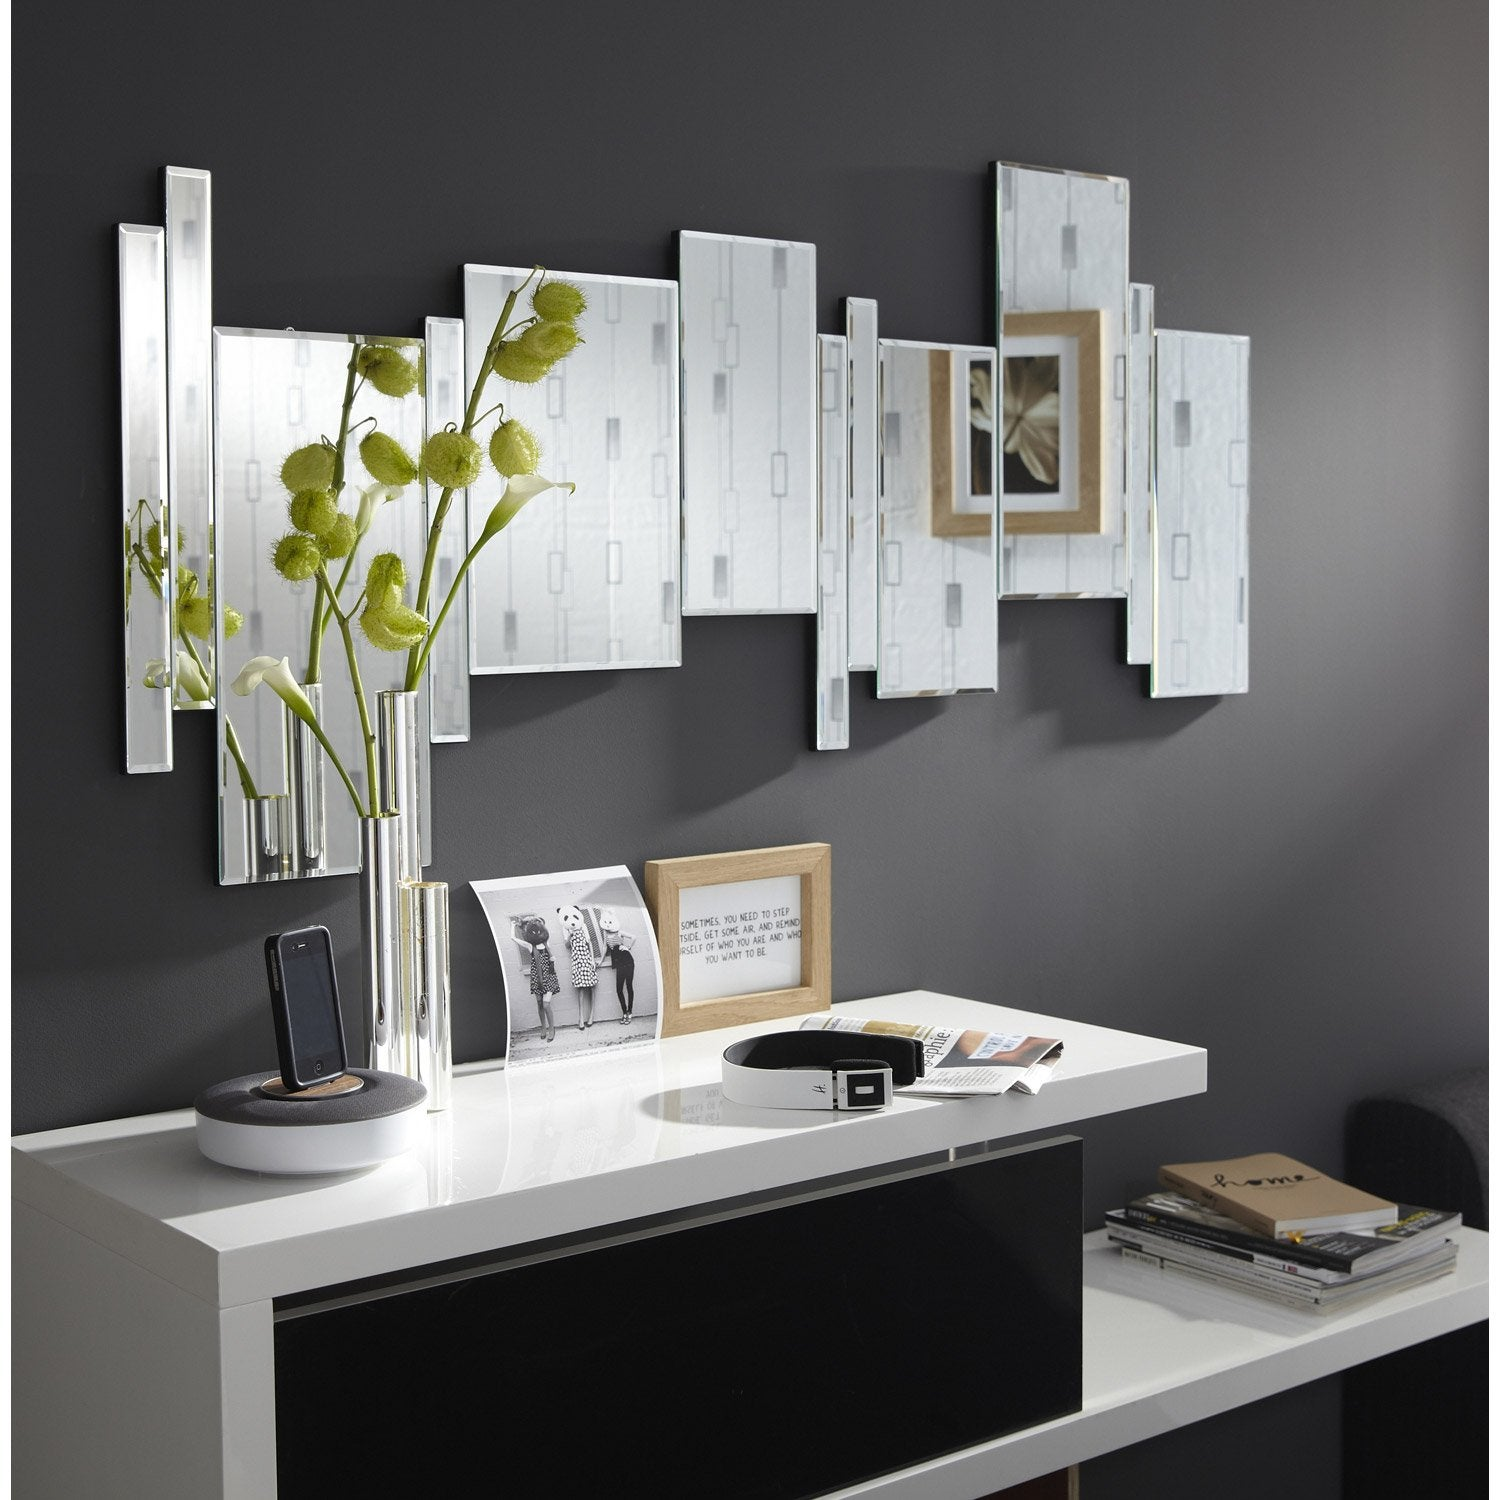 Miroir axel x cm leroy merlin for Miroir design salon